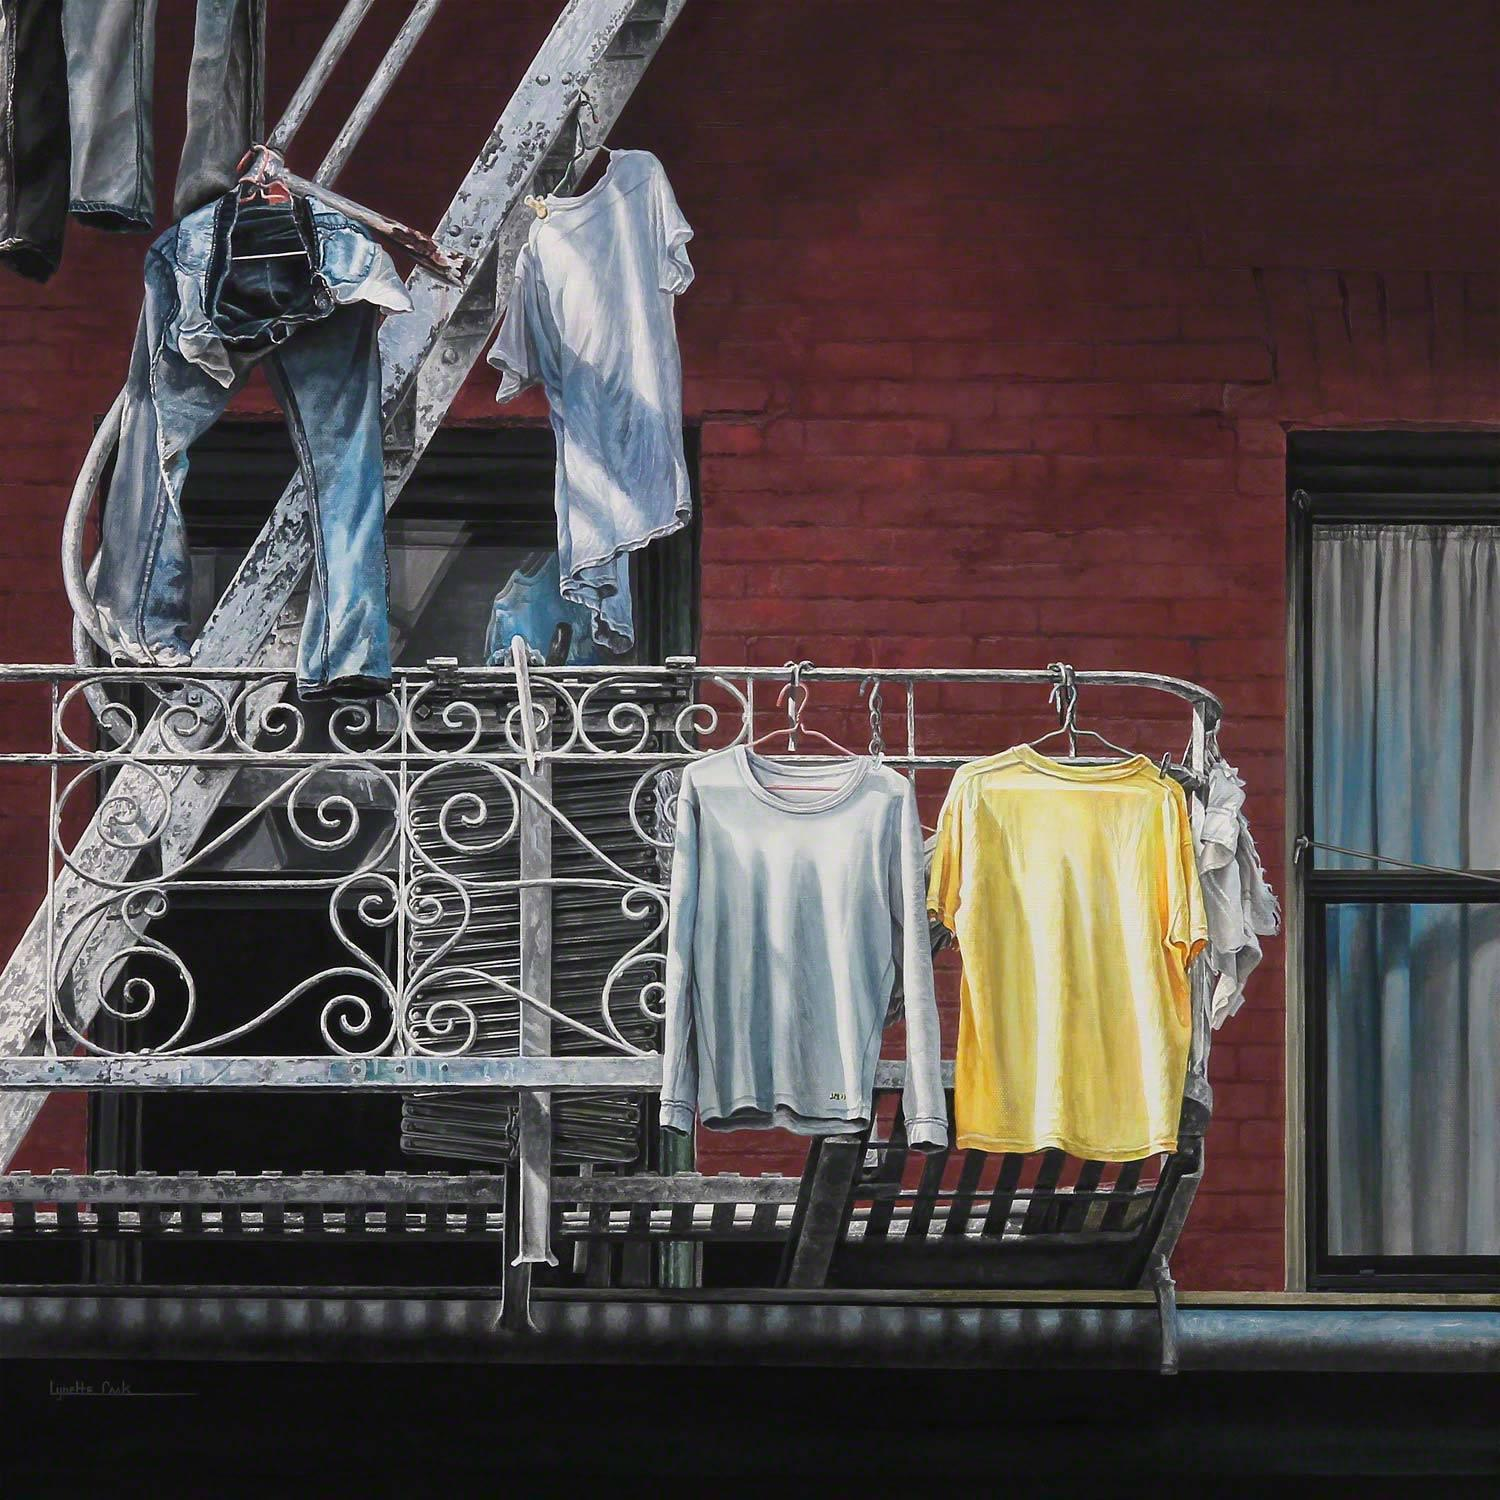 Twosome / acrylic painting blue jeans and t shirts